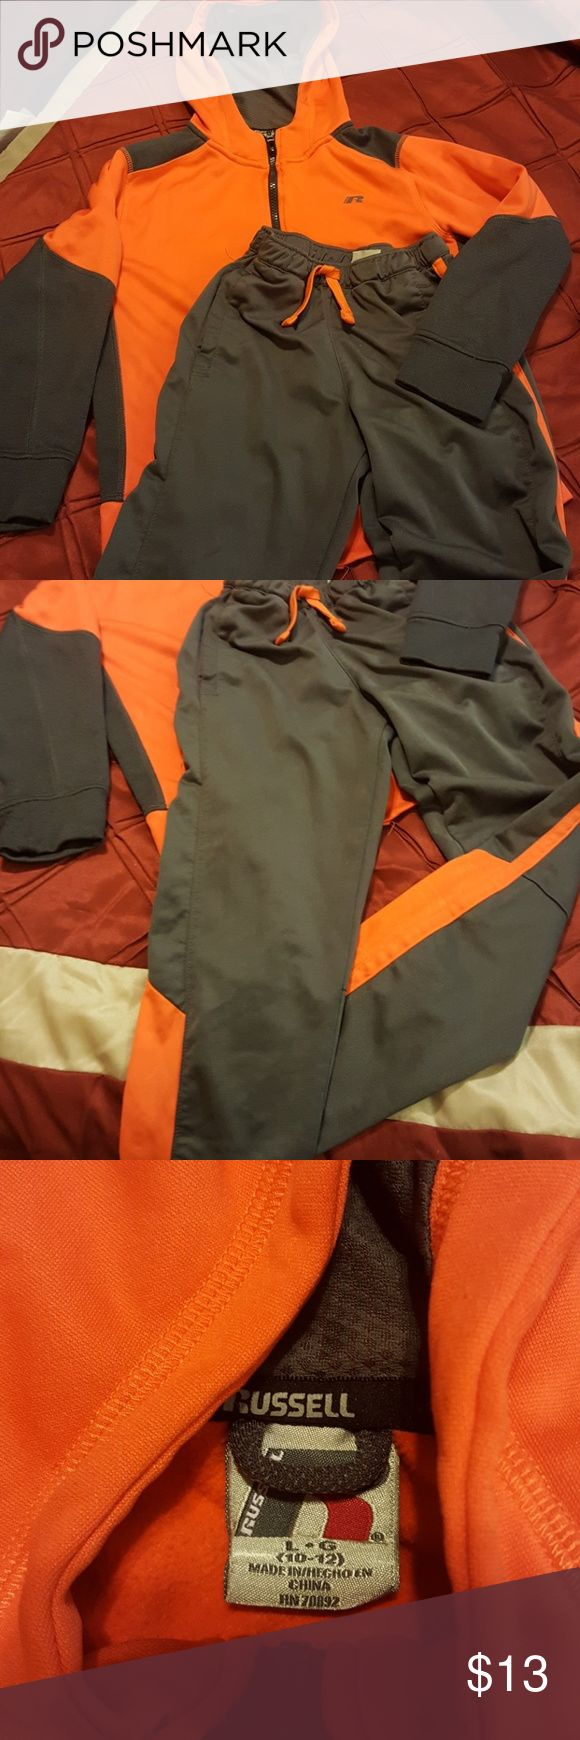 Boys jogging suit This is a boys jogging suit by Russell Athletics in charcoal gray and orange.  The hoodie is a 10/12 and the pants are an 8.  This is in excellent used condition.  Very vibrant! Pants have elastic waist and a drawstring. Russell Matching Sets